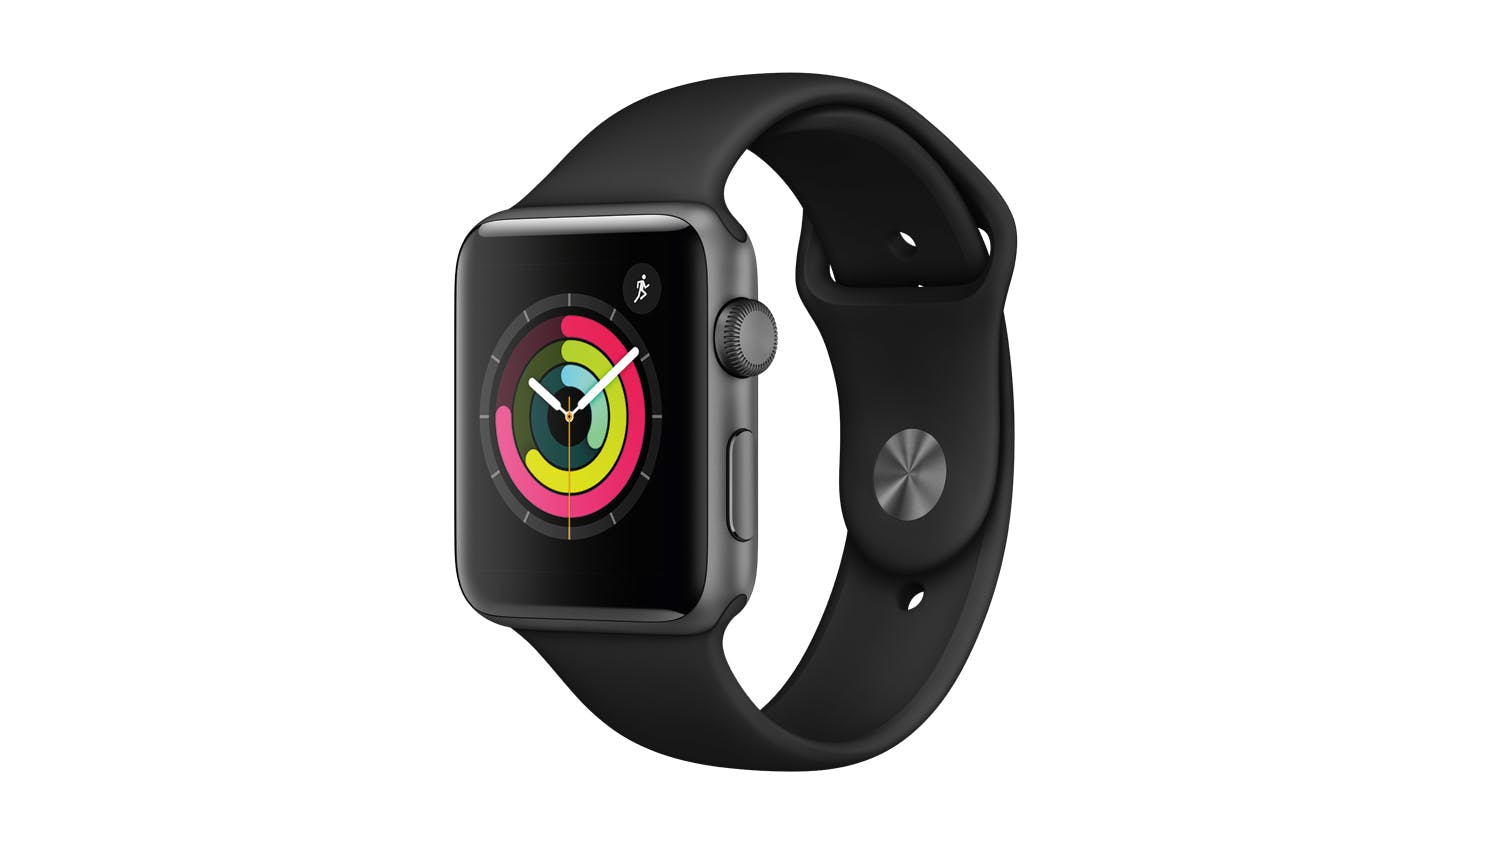 aa81436921a Apple Watch Series 3 (GPS) 42mm Space Grey + Black Sport Band | Harvey  Norman New Zealand